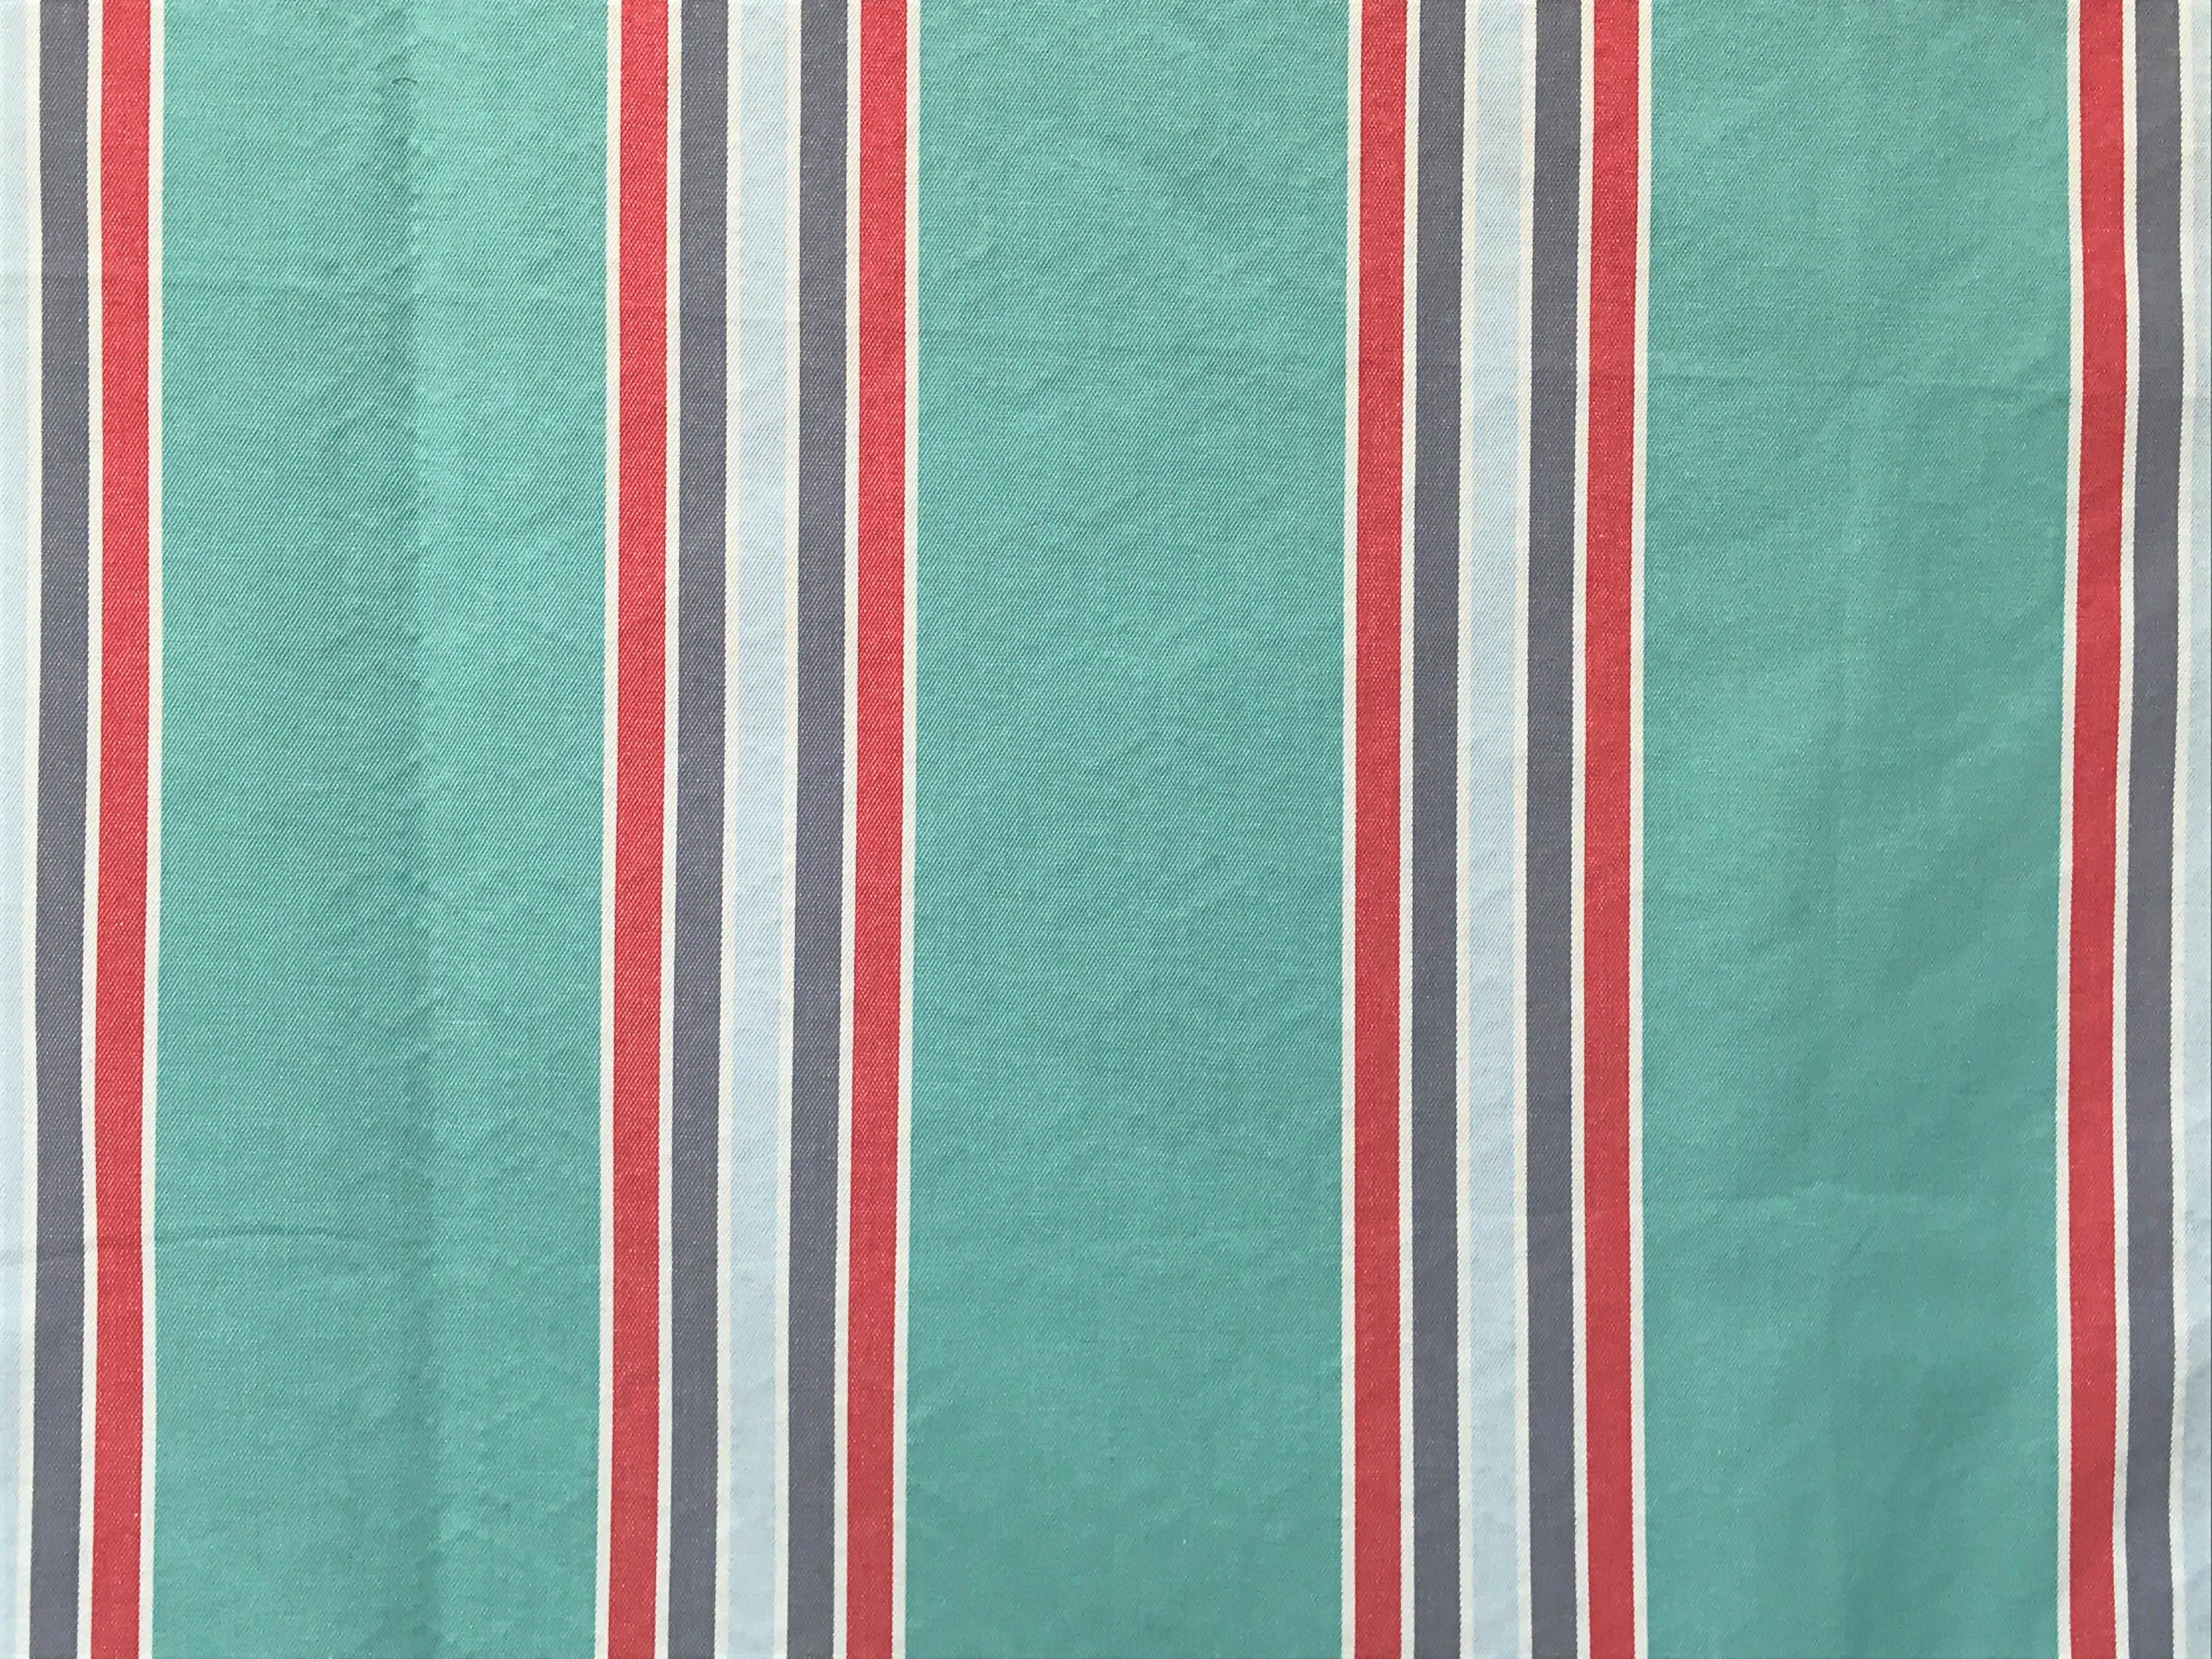 Curtain Fabric Wholesale Sea Green Red And Blue Stripes Curtain Fabric By The Yard